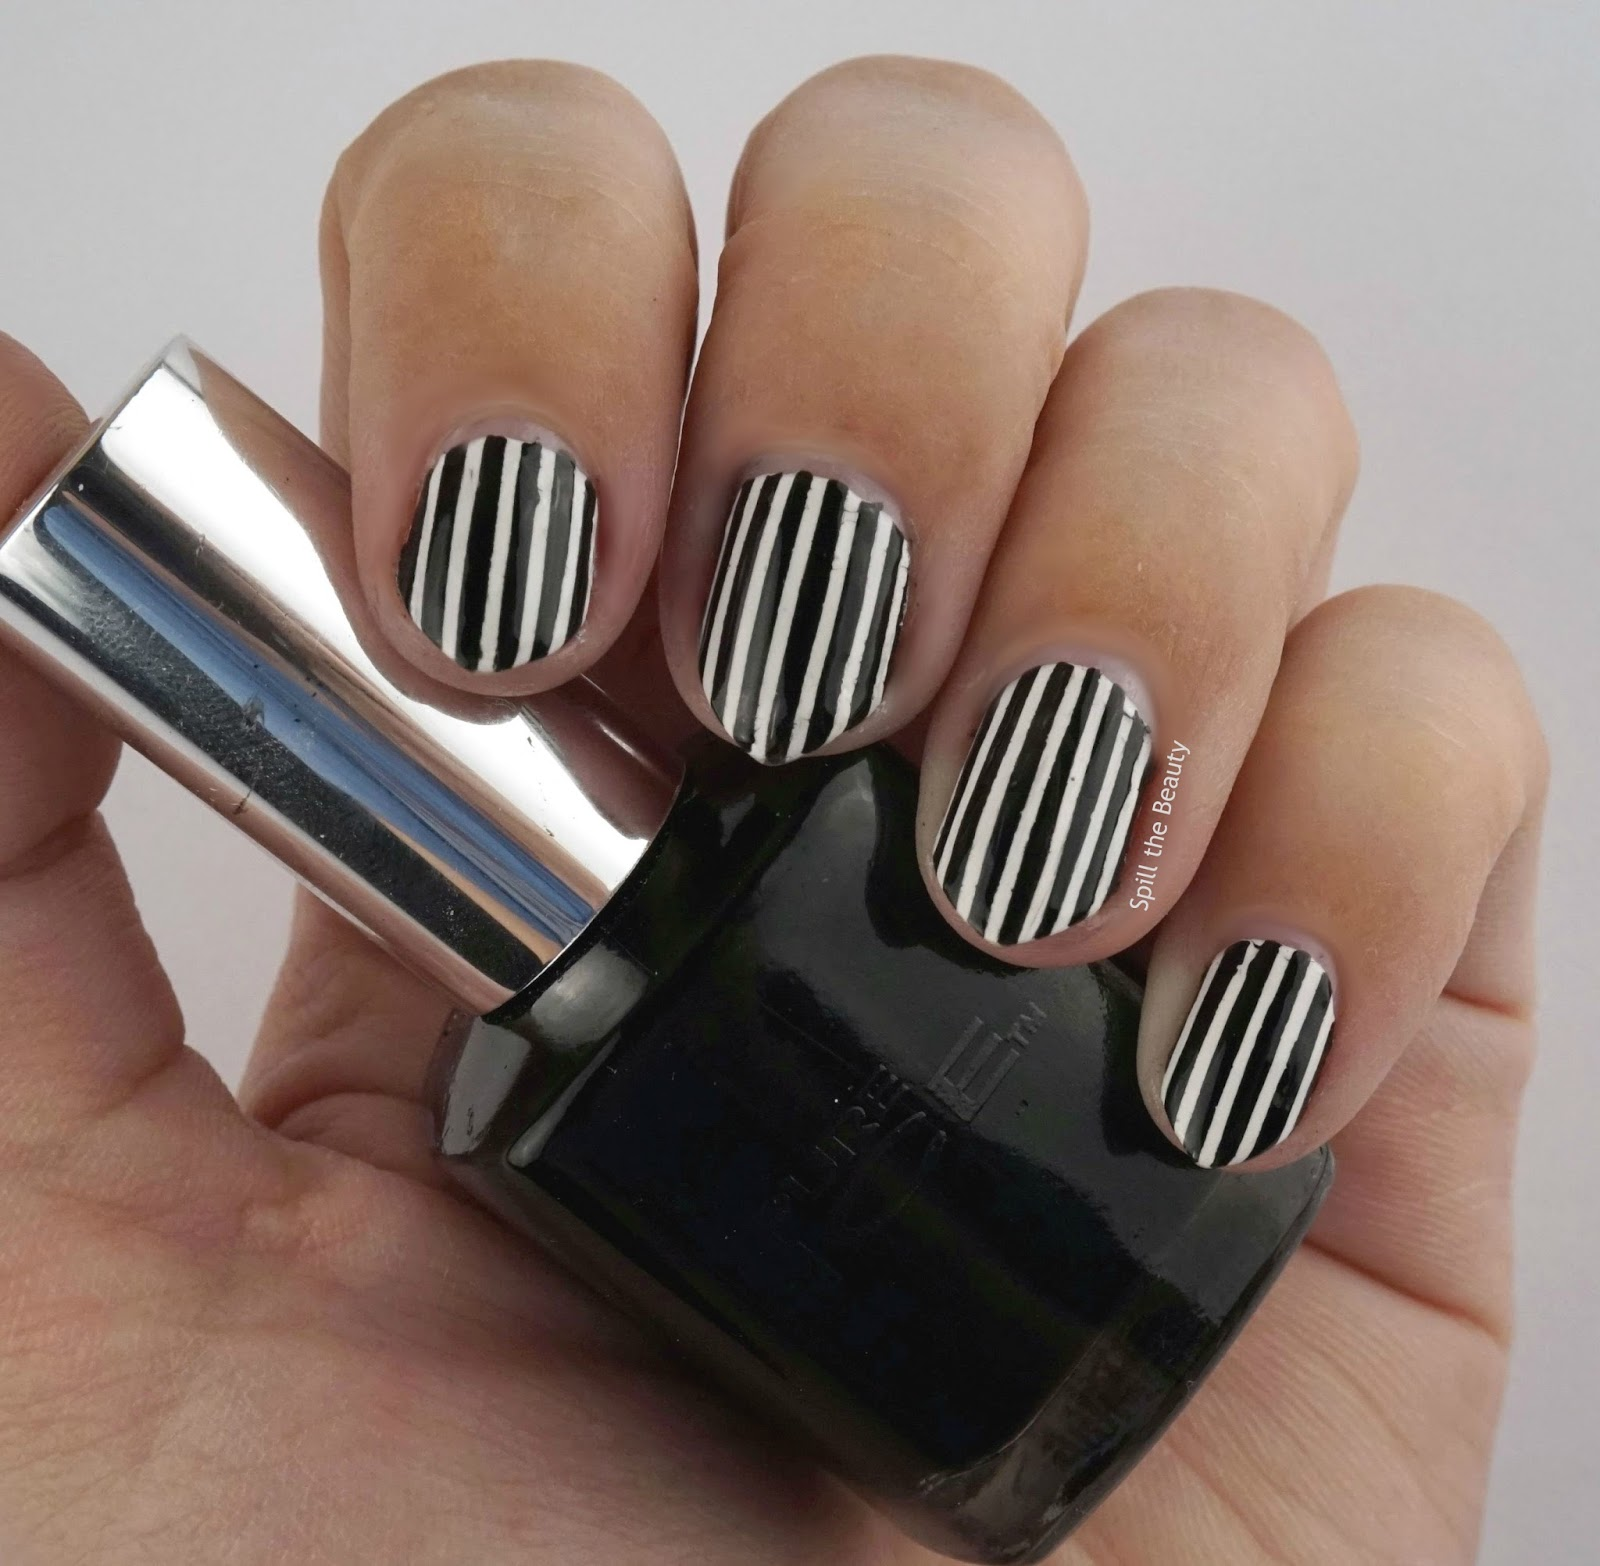 #ManiMonday – BeetleJuice